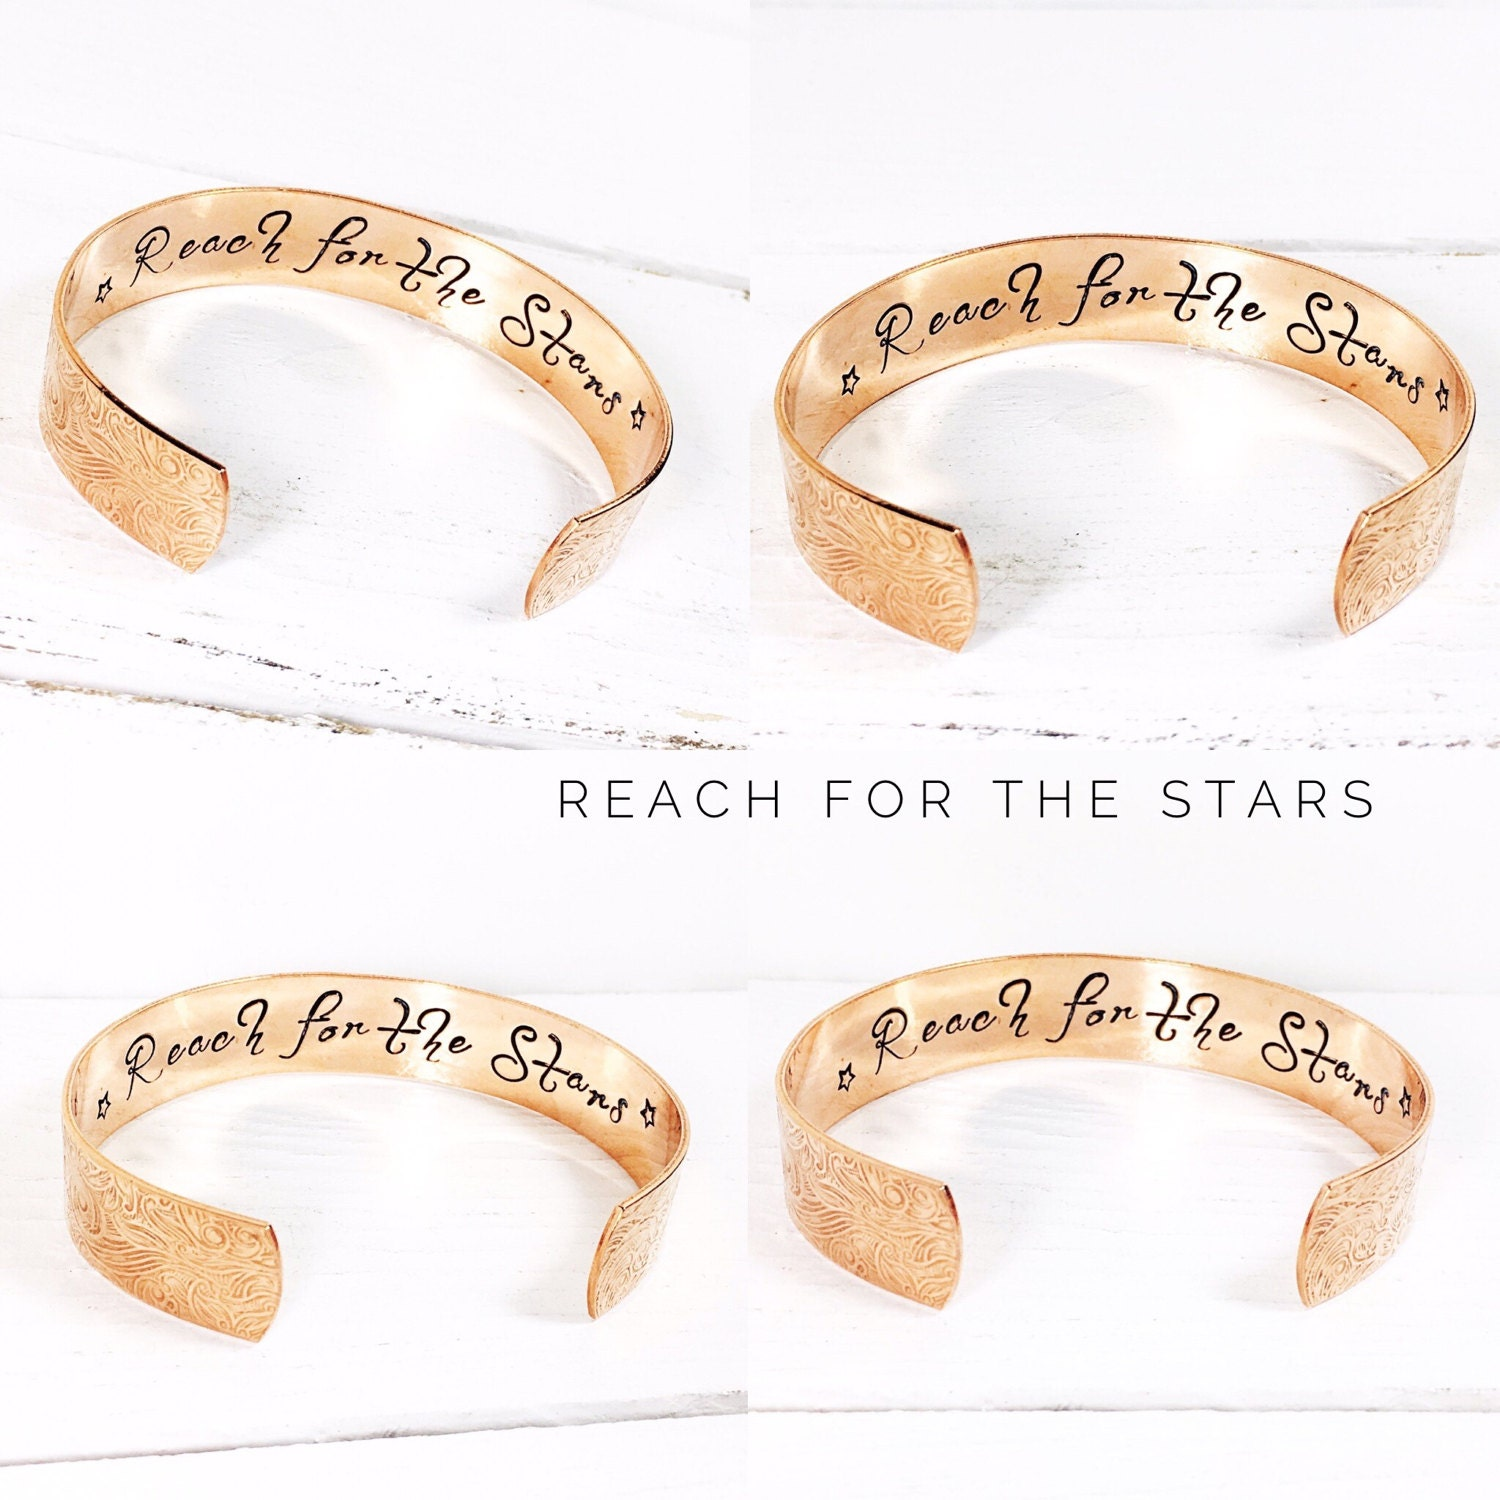 Womens gift  Personalized Jewelry Reach for the stars bracelet Rose Gold Floral Bracelet Gold Floral Bracelet Silver Floral Cuff (C163)